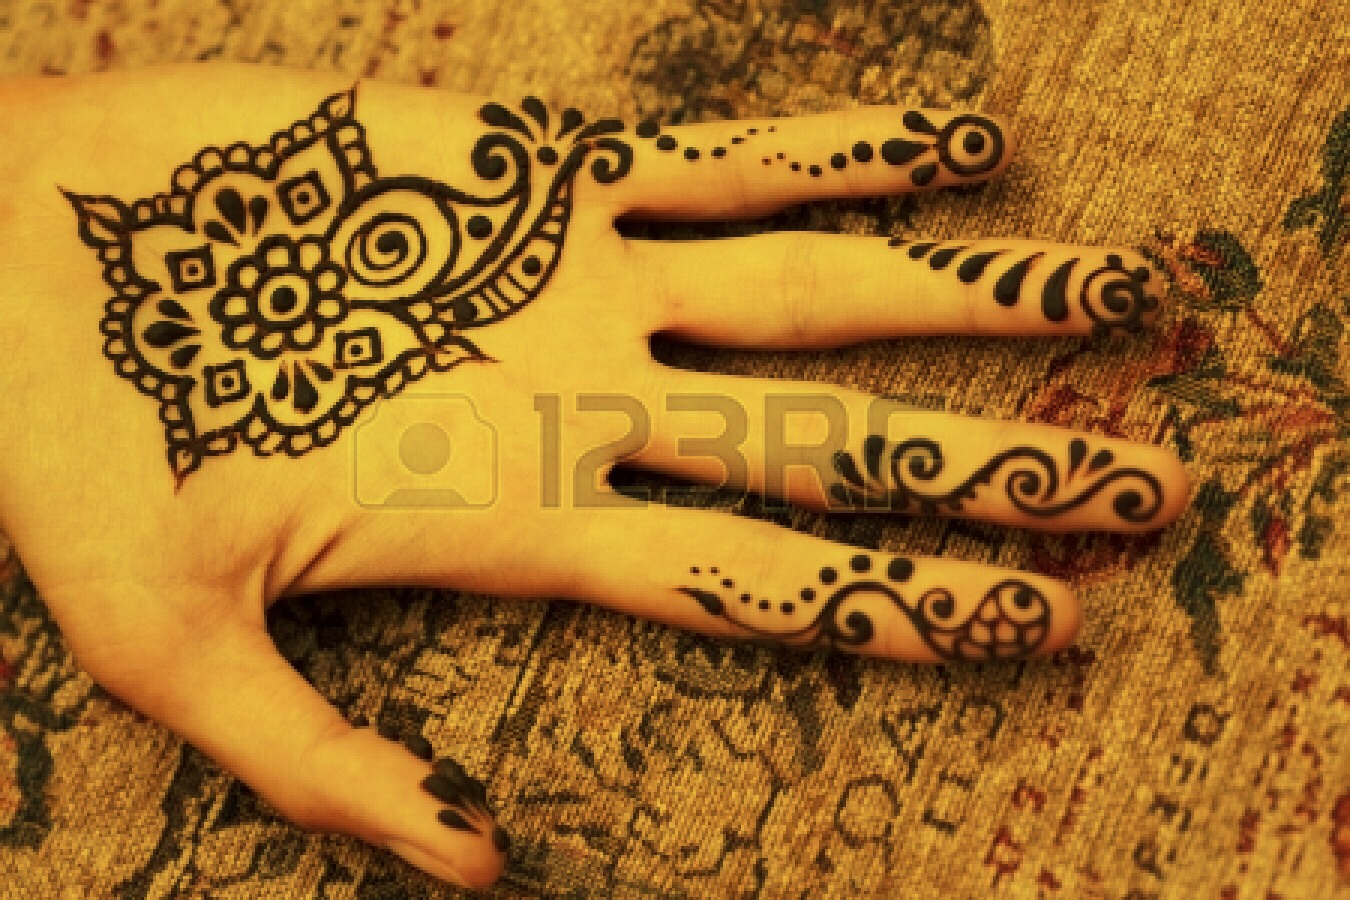 With this technique, you can create any temporary henna tattoo you want!